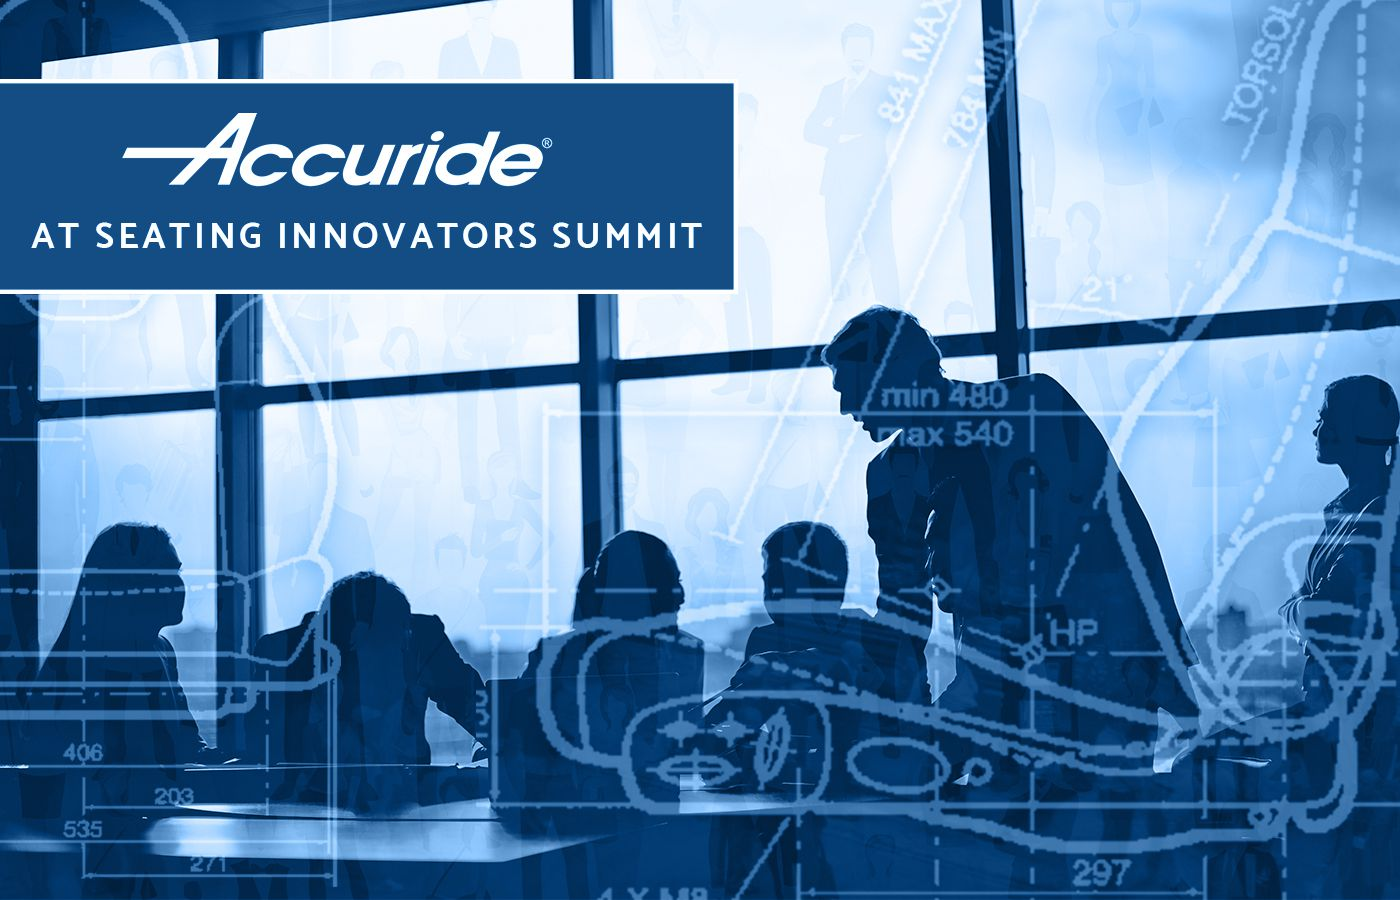 Accuride at the seating innovators summit